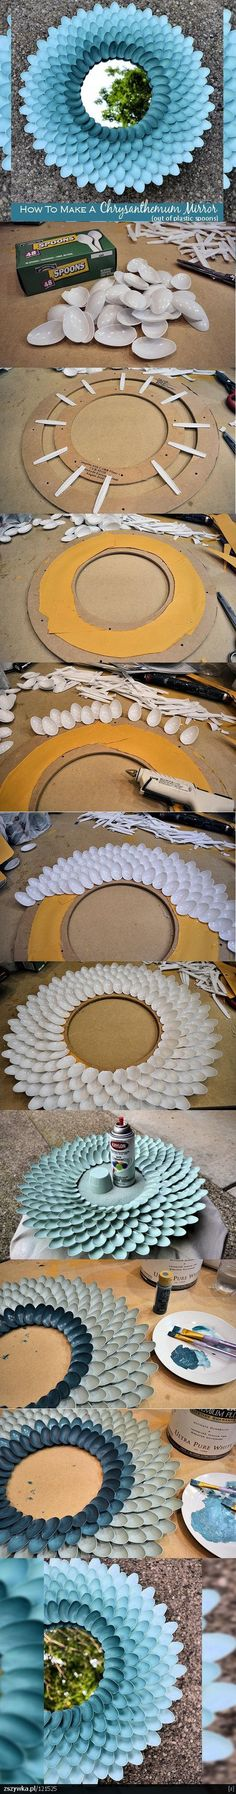 holy crap, that is COOL!!! DIY - chrysanthemum mirror out of plastic spoons